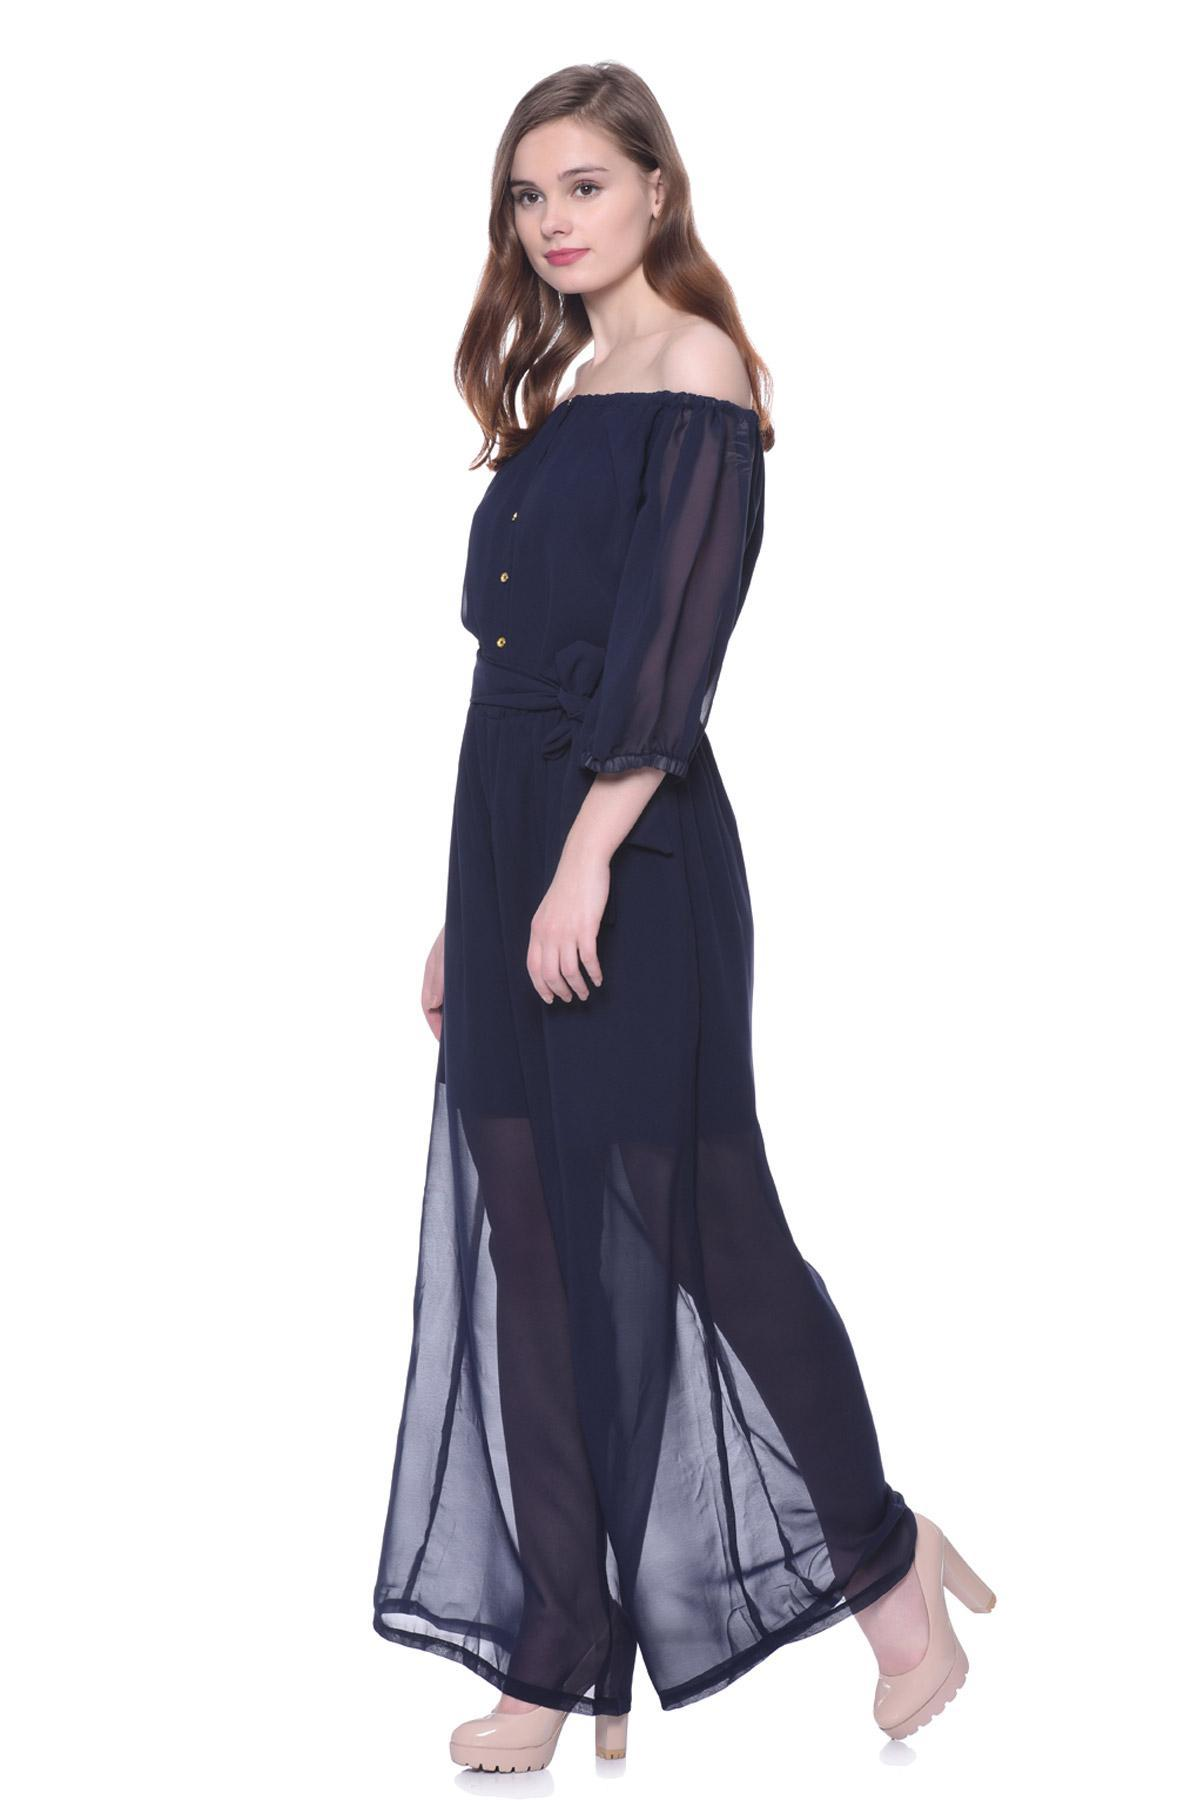 ff16bbffee3 ... Uptownie 101 clothing Gone With The Wind Off-Shoulder Jumpsuit Navy  Blue jumpsuit for rent ...